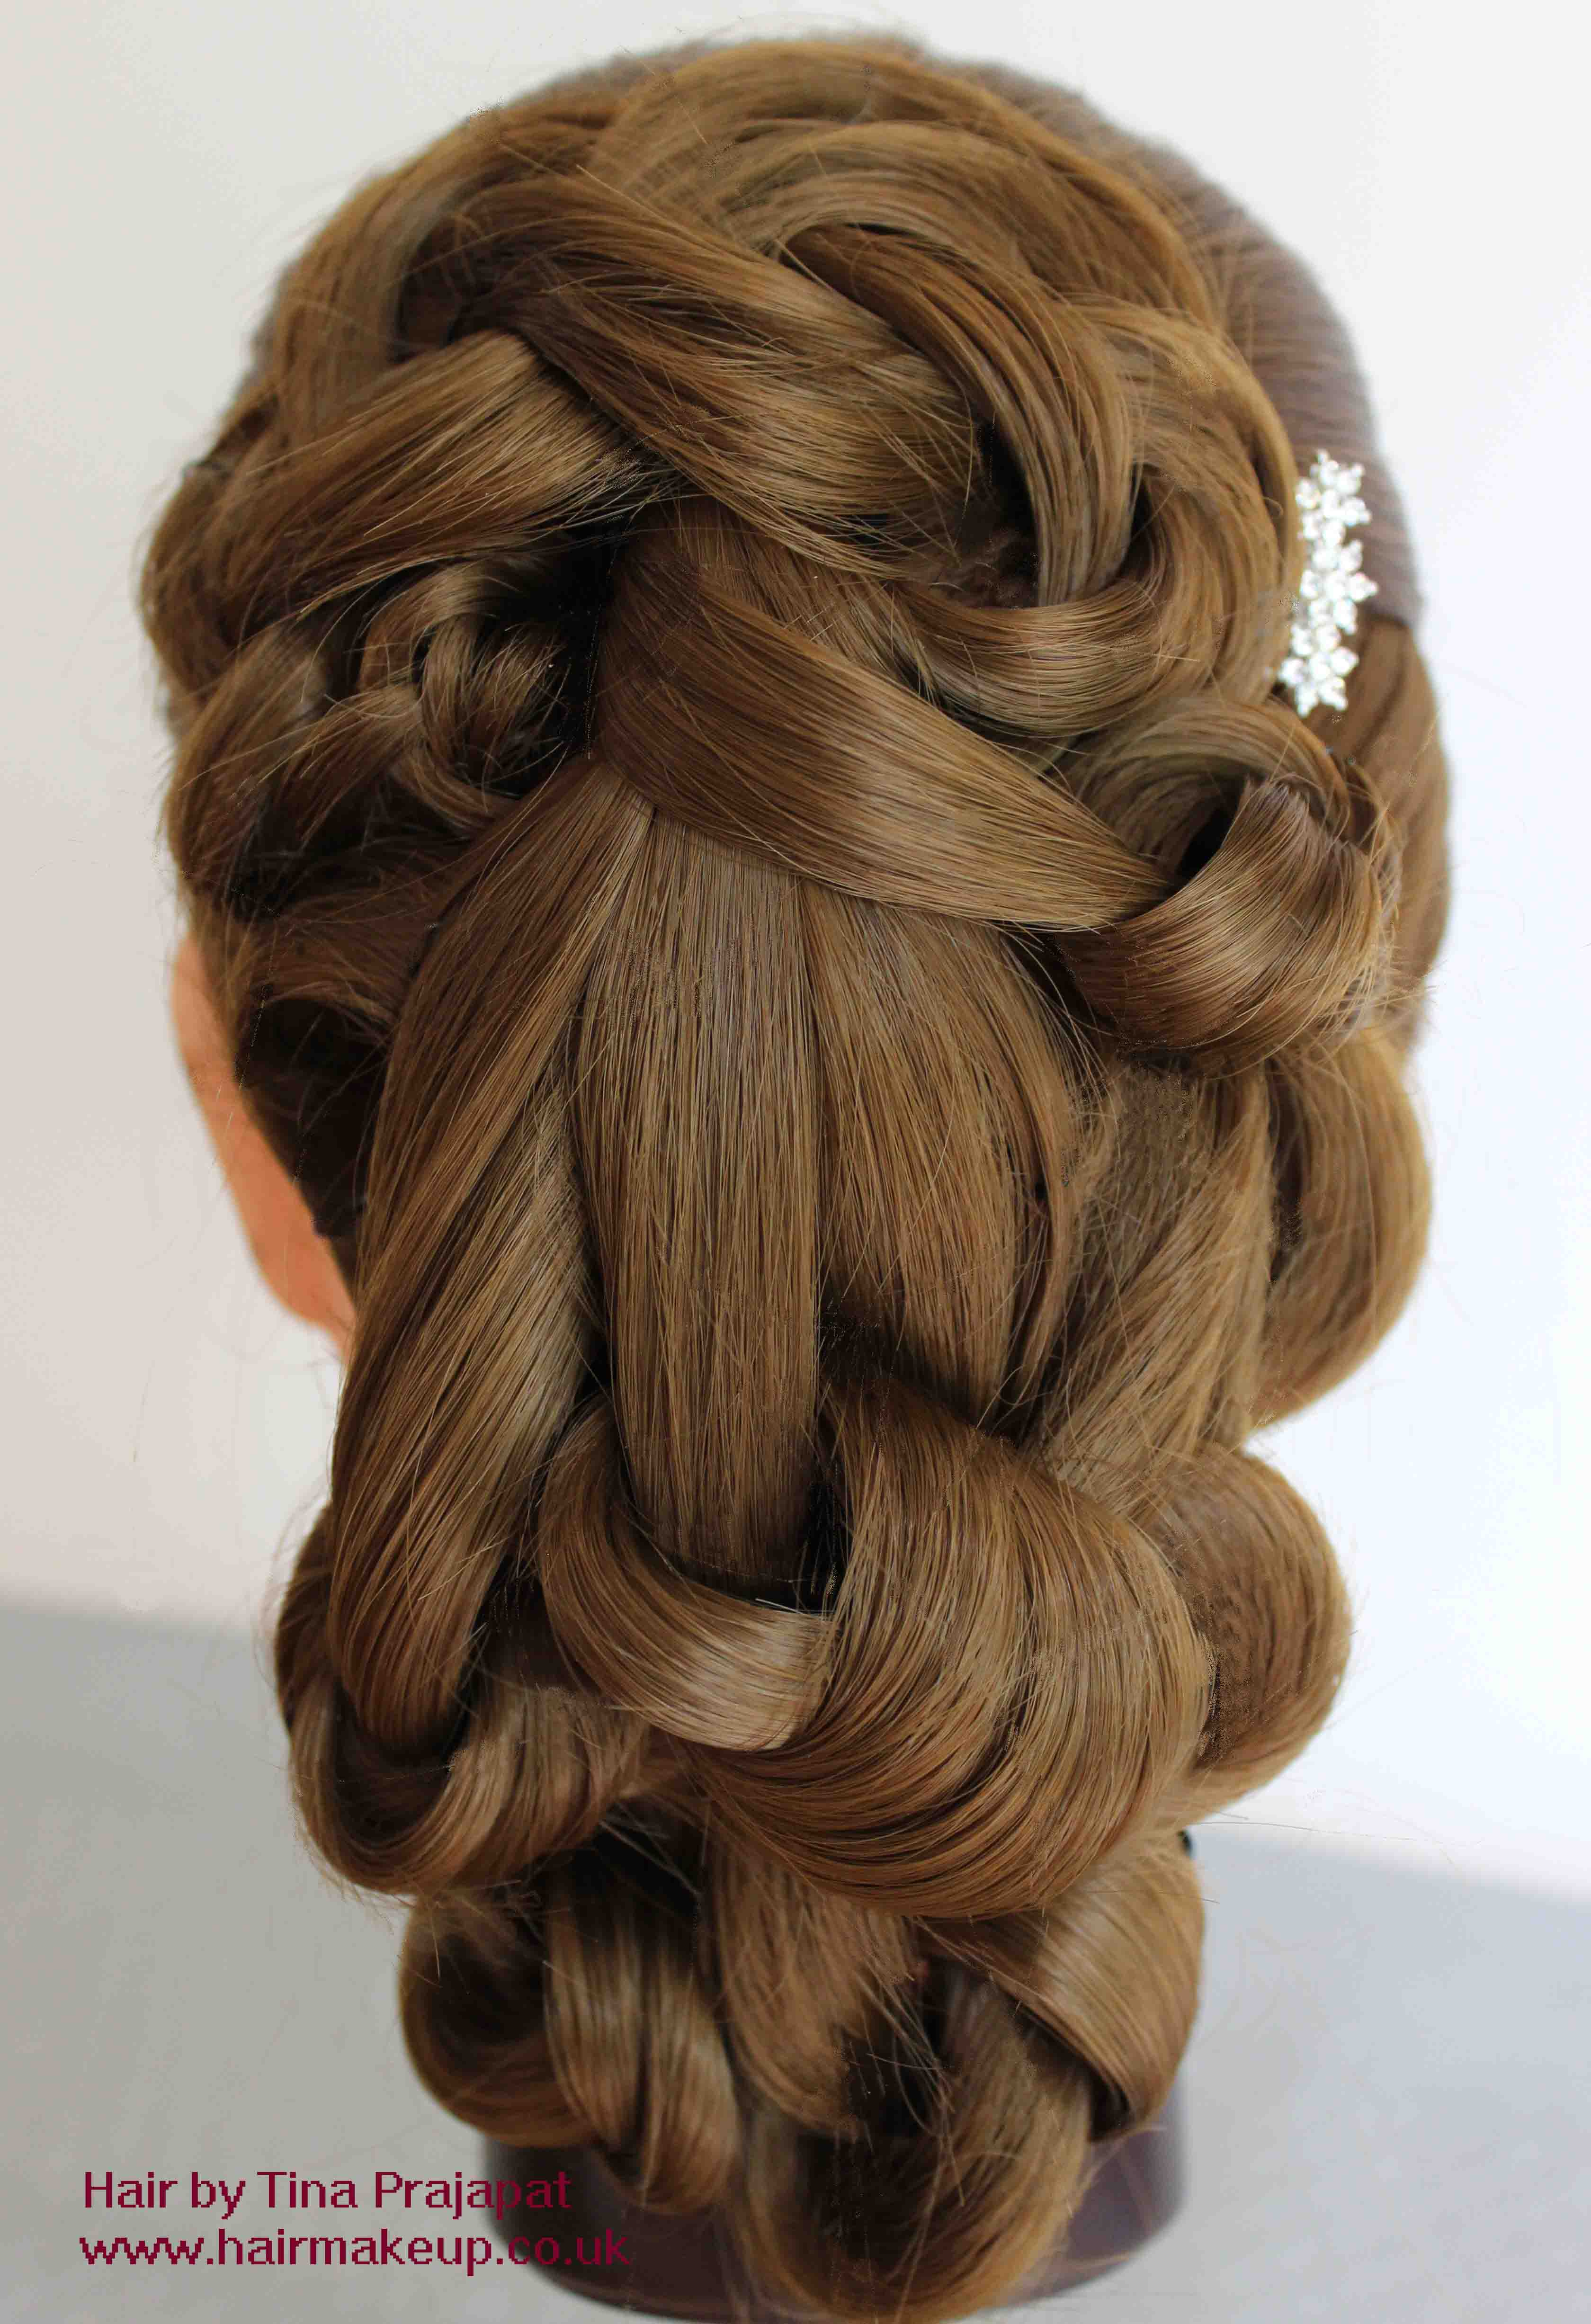 Knotted Hair Related Keywords & Suggestions - Knotted Hair Long Tail